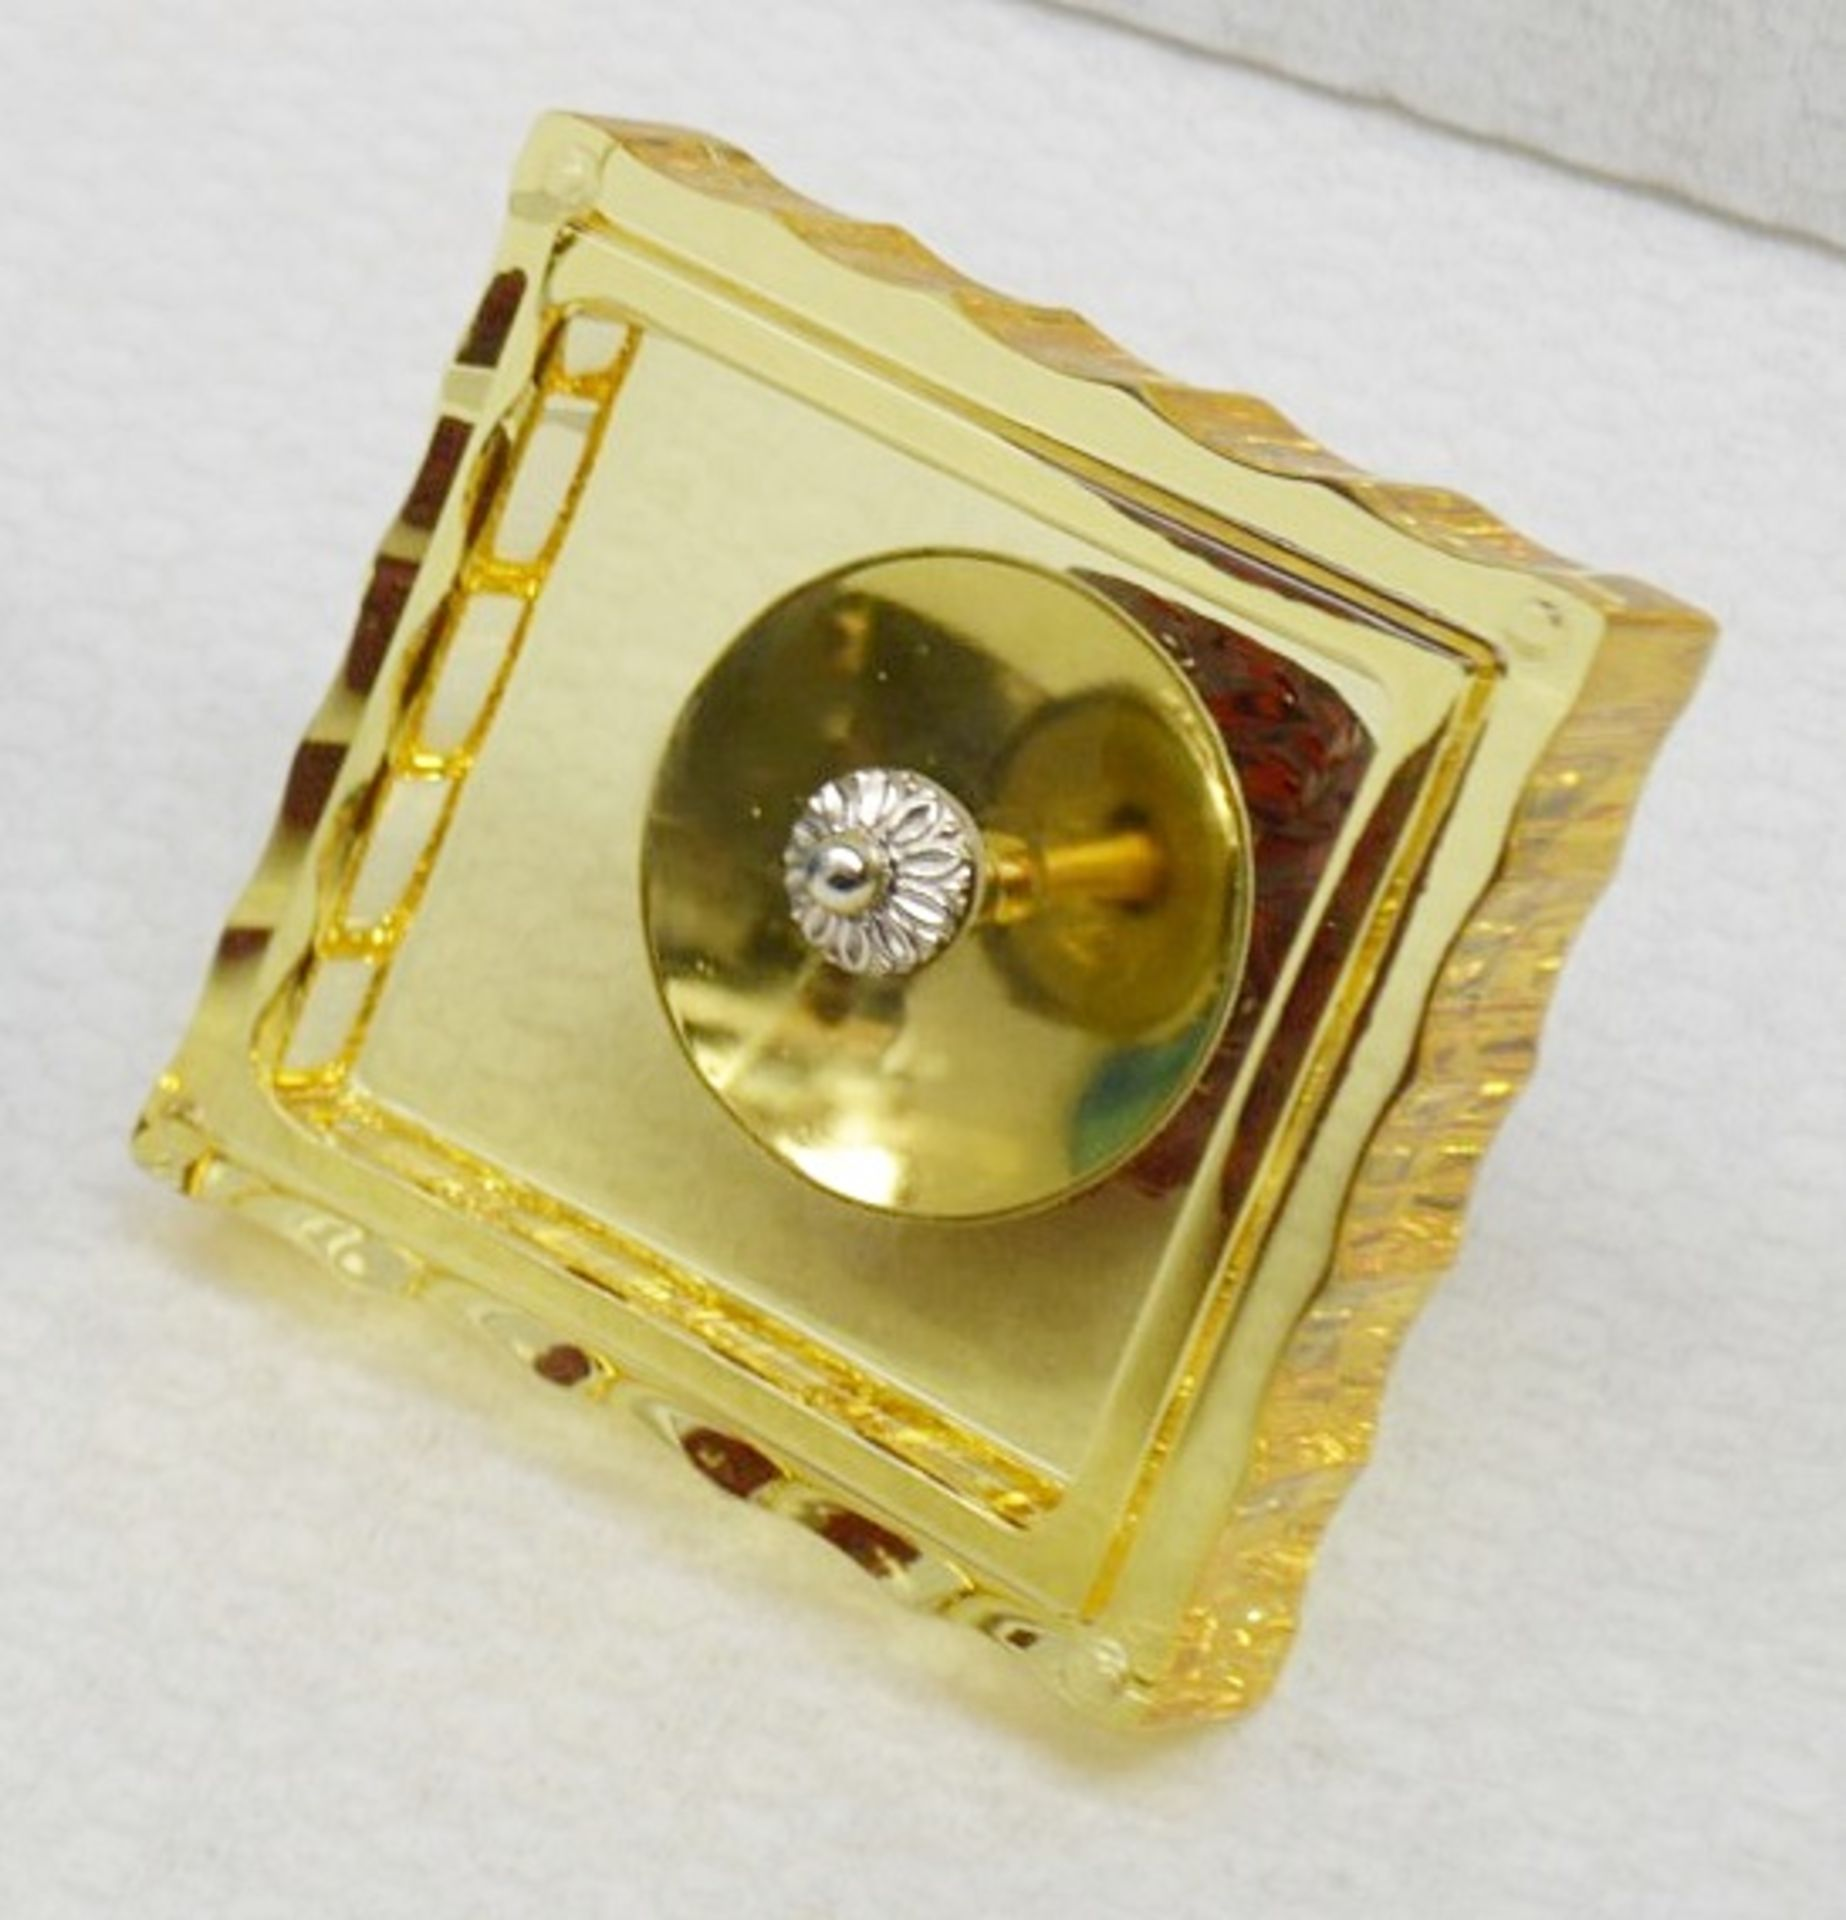 1 x BALDI 'Home Jewels' Italian Hand-crafted Artisan Crystal Box In Blue & Yellow, With A - Image 2 of 5